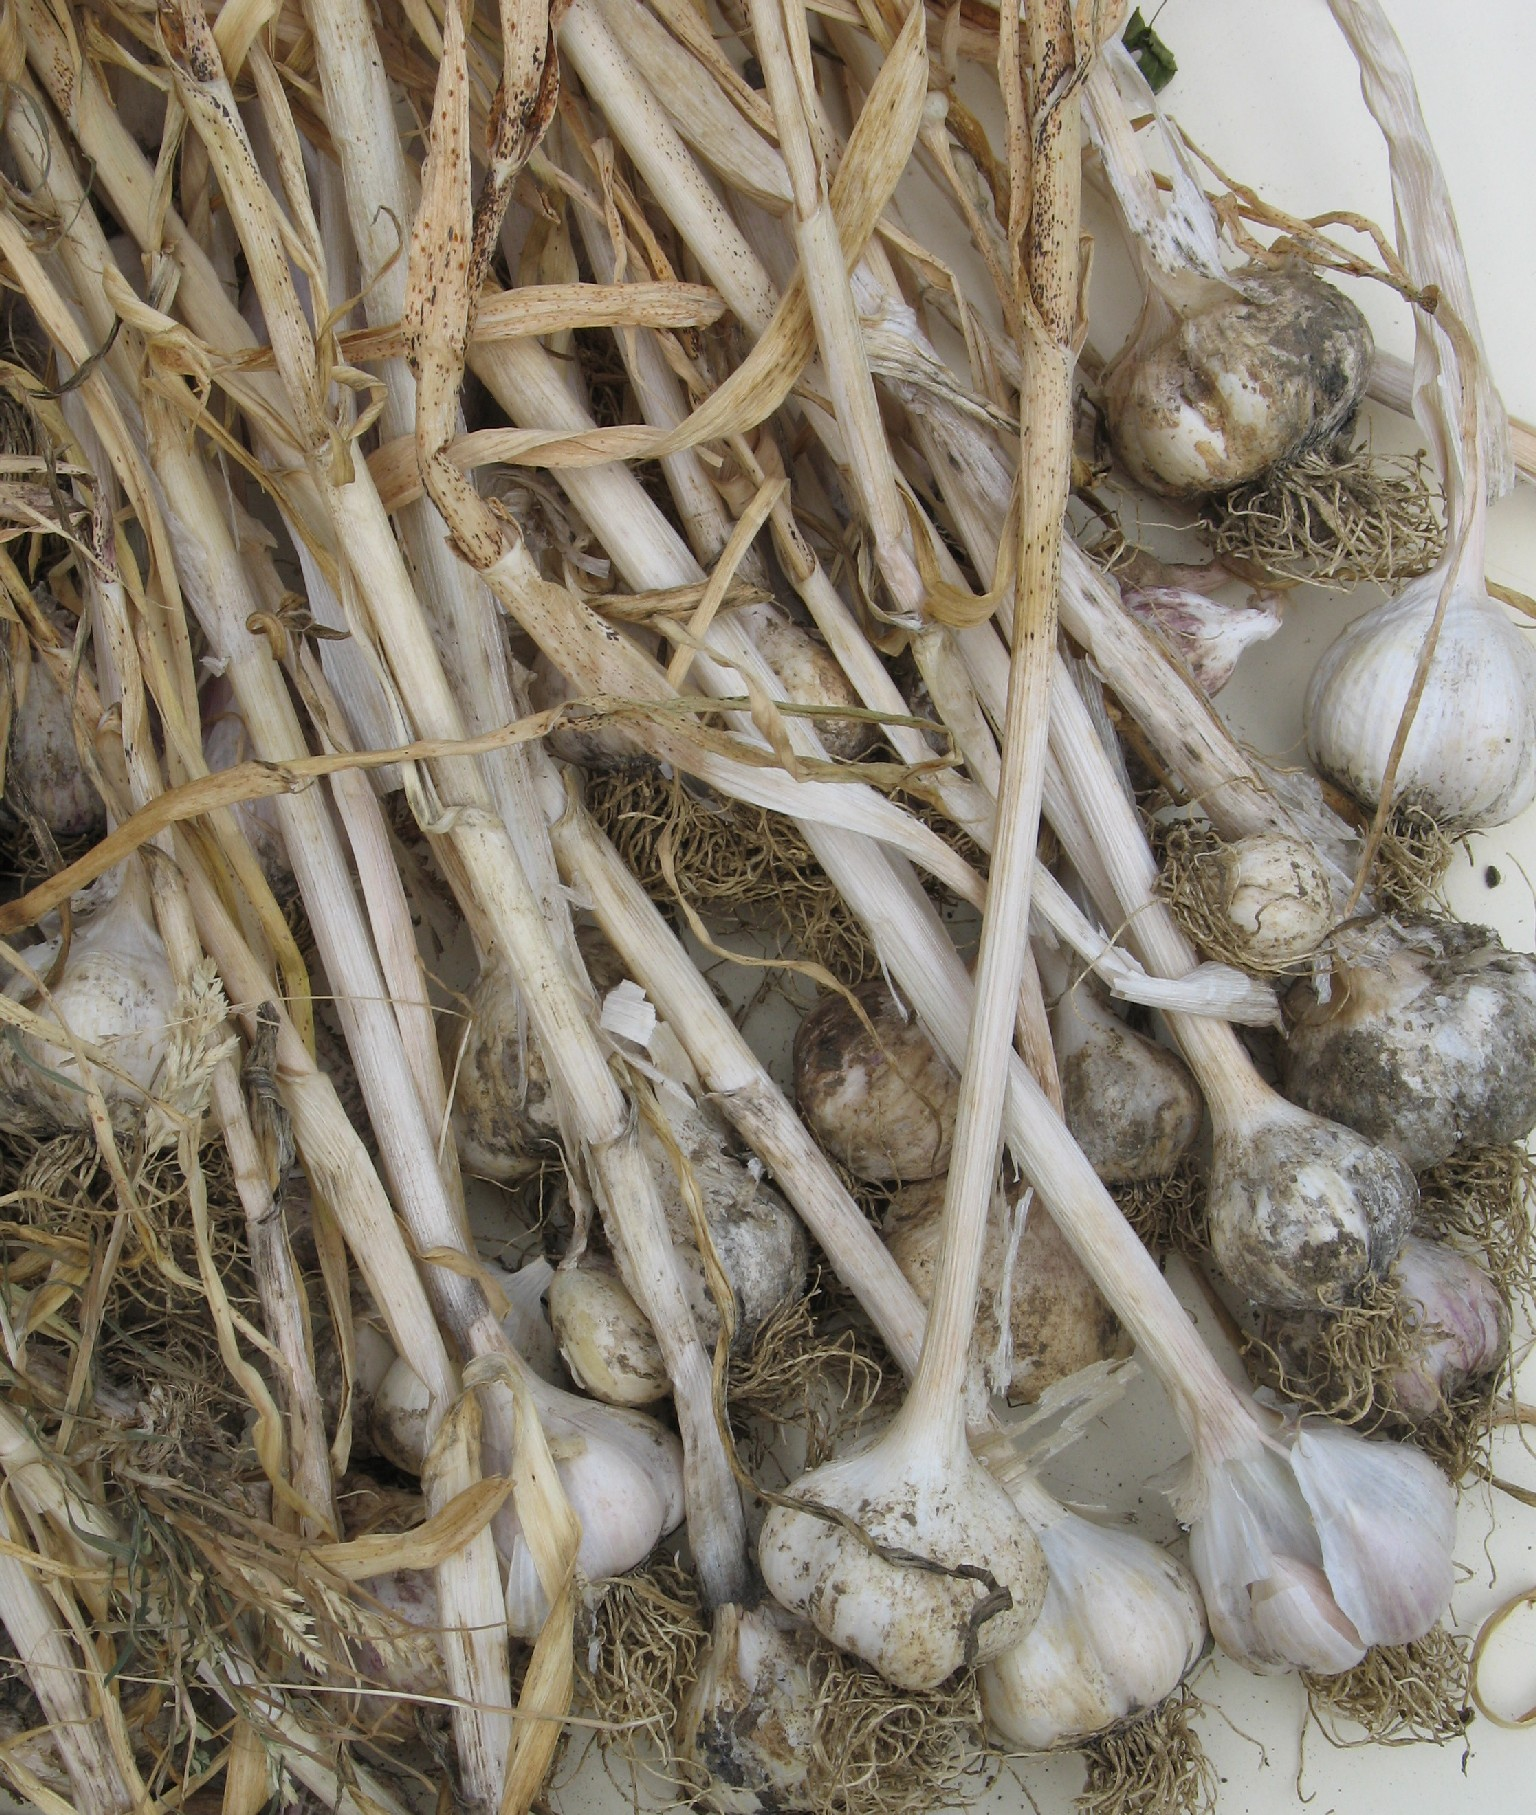 Harvested Garlic